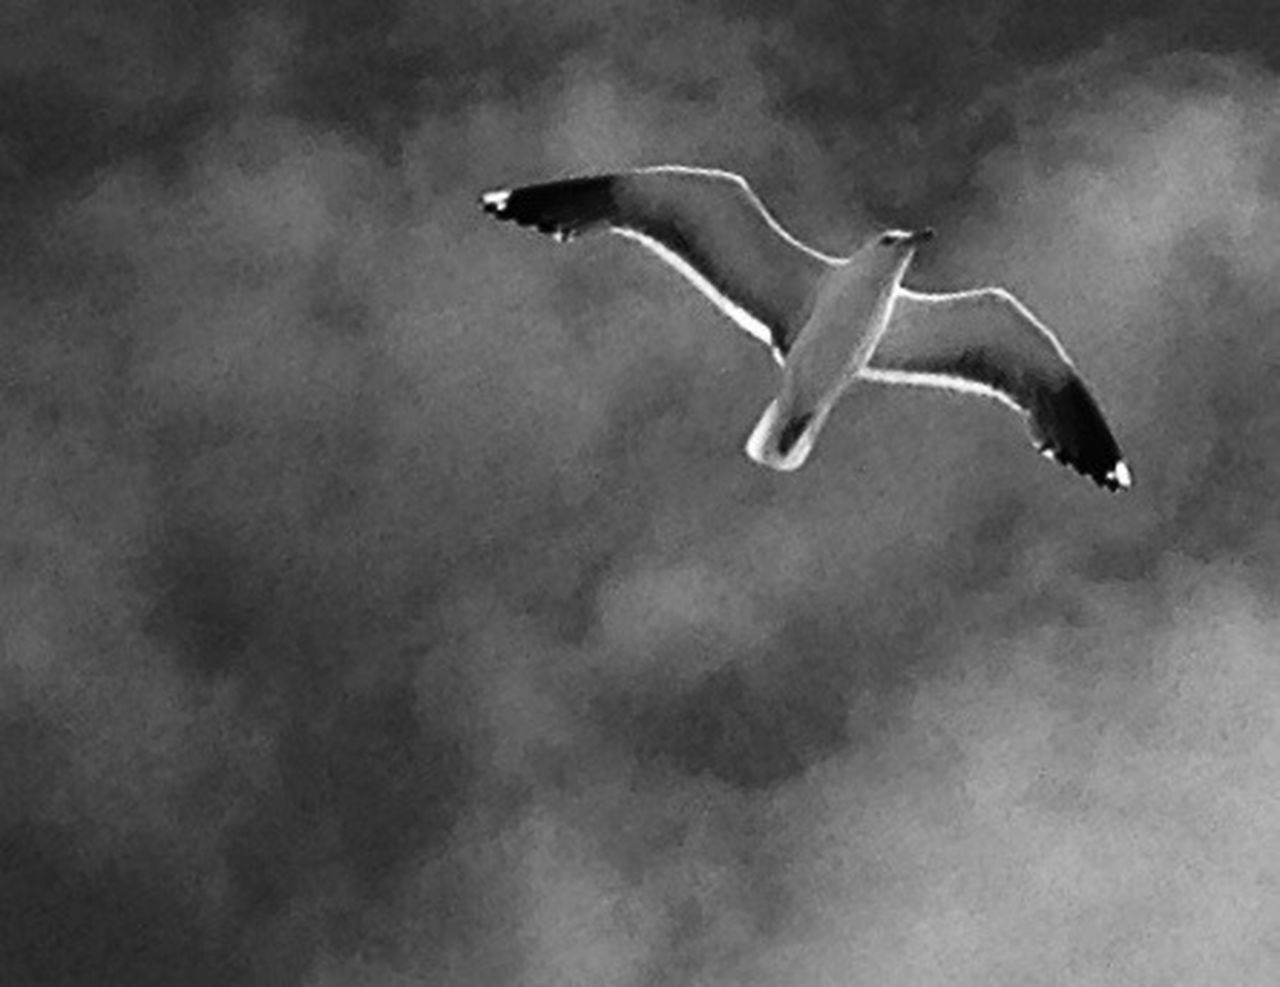 flying, smoke - physical structure, mid-air, animals in the wild, one animal, spread wings, animal themes, no people, animal wildlife, bird, motion, low angle view, outdoors, day, sky, nature